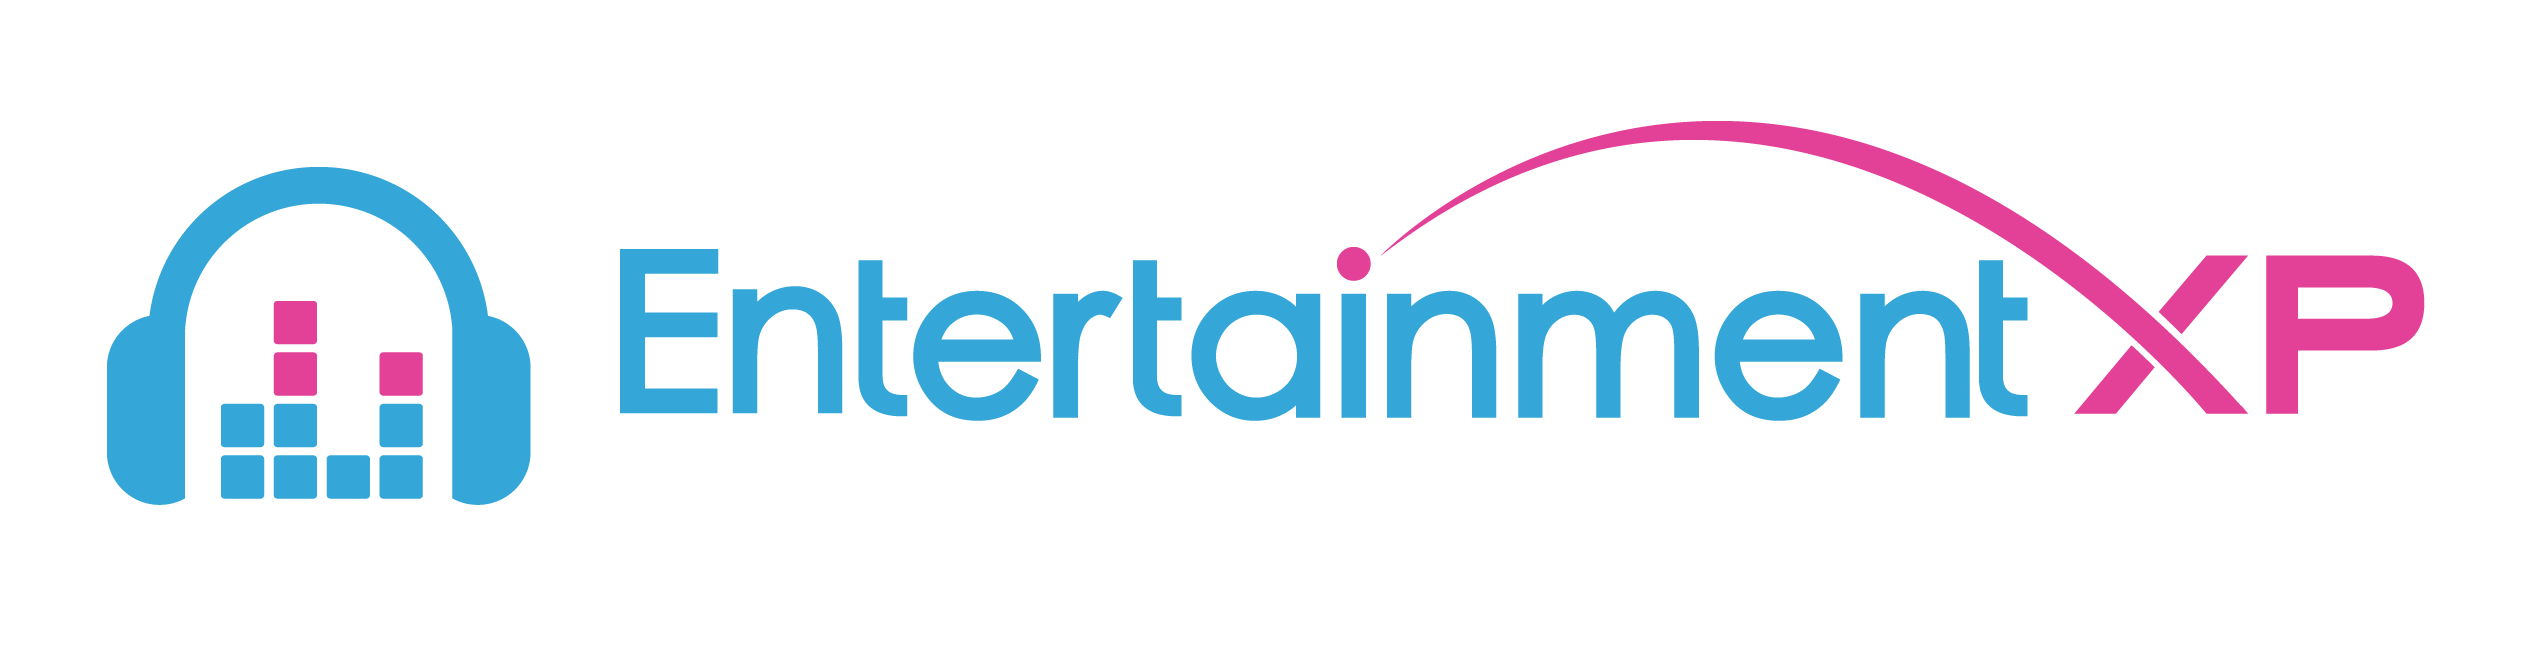 EntertainmentXP